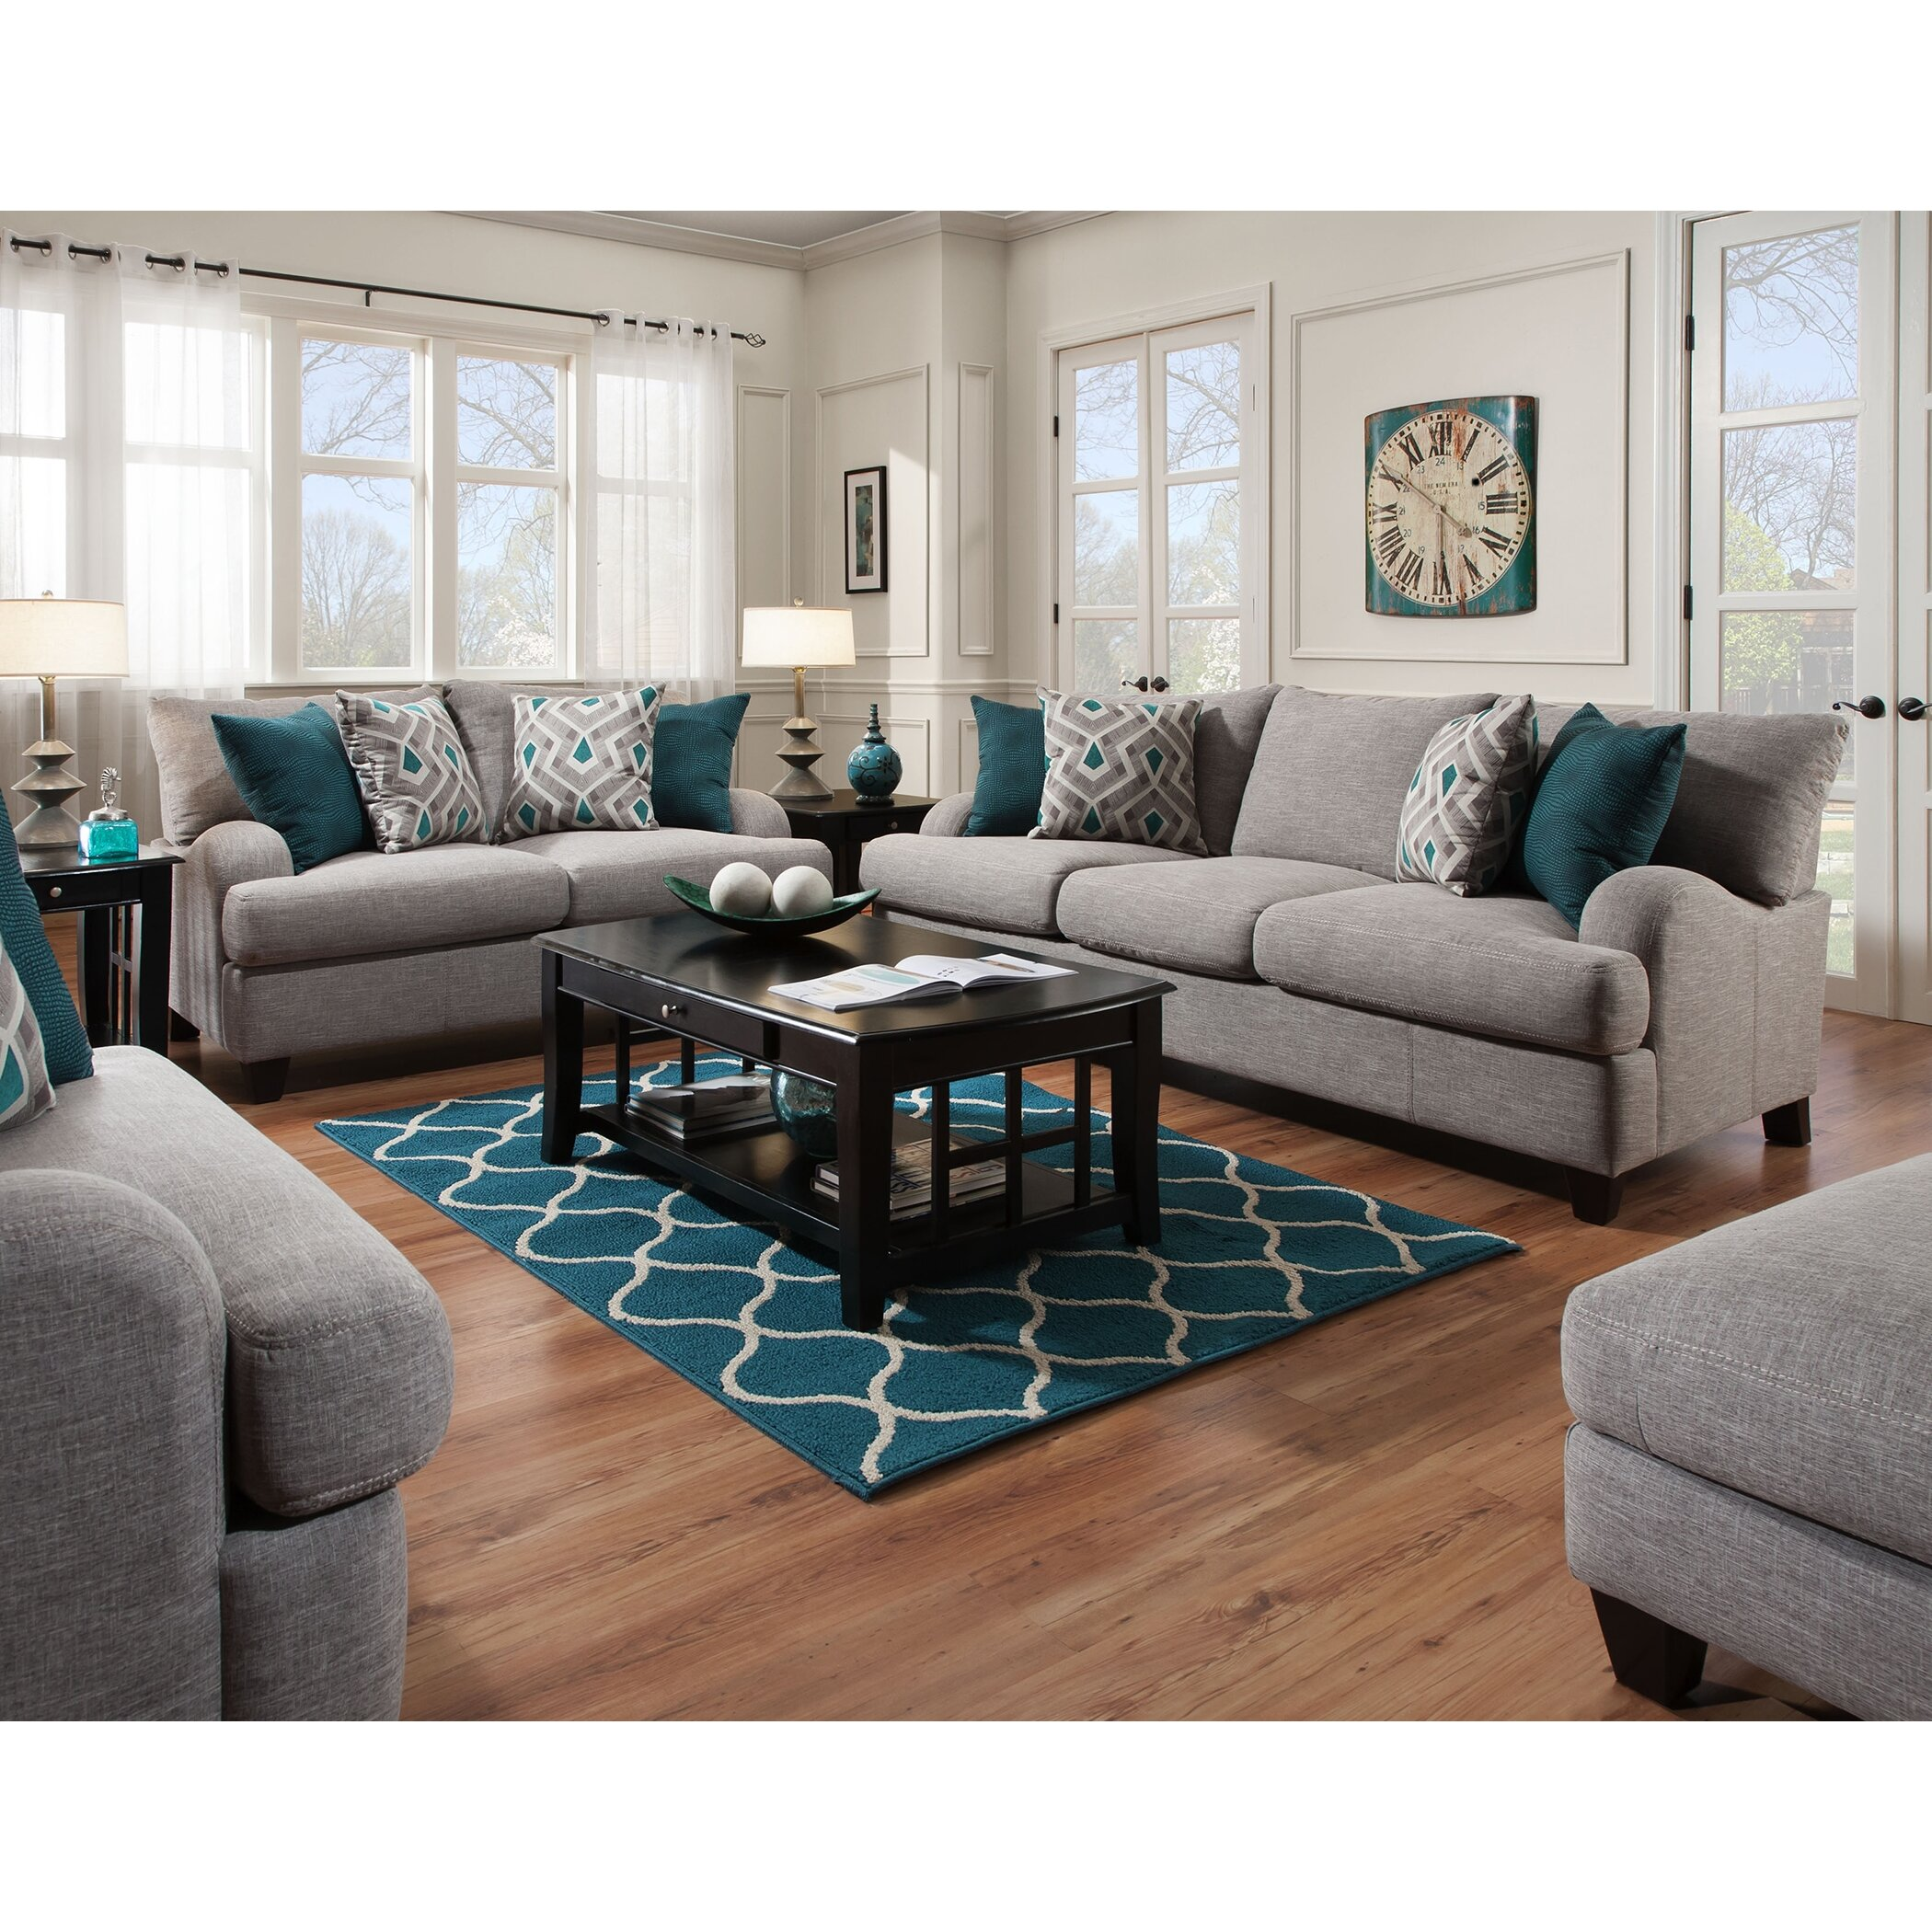 Farmhouse Living Room Furniture: Living Room Furniture Wayfair